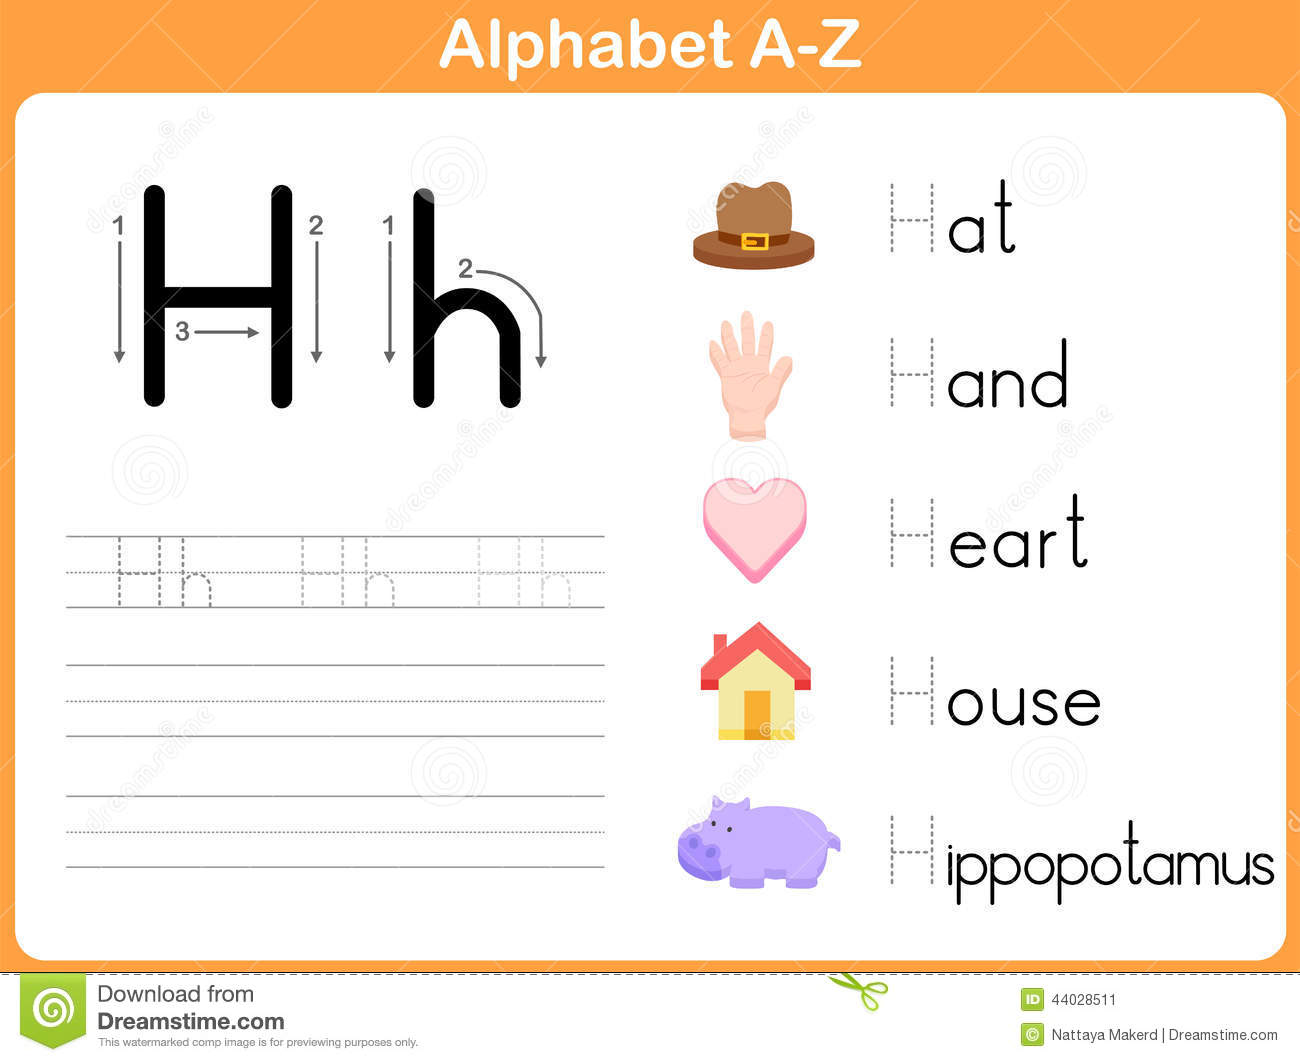 Alphabet Worksheets Az : Printable tracing alphabet worksheets a z letter